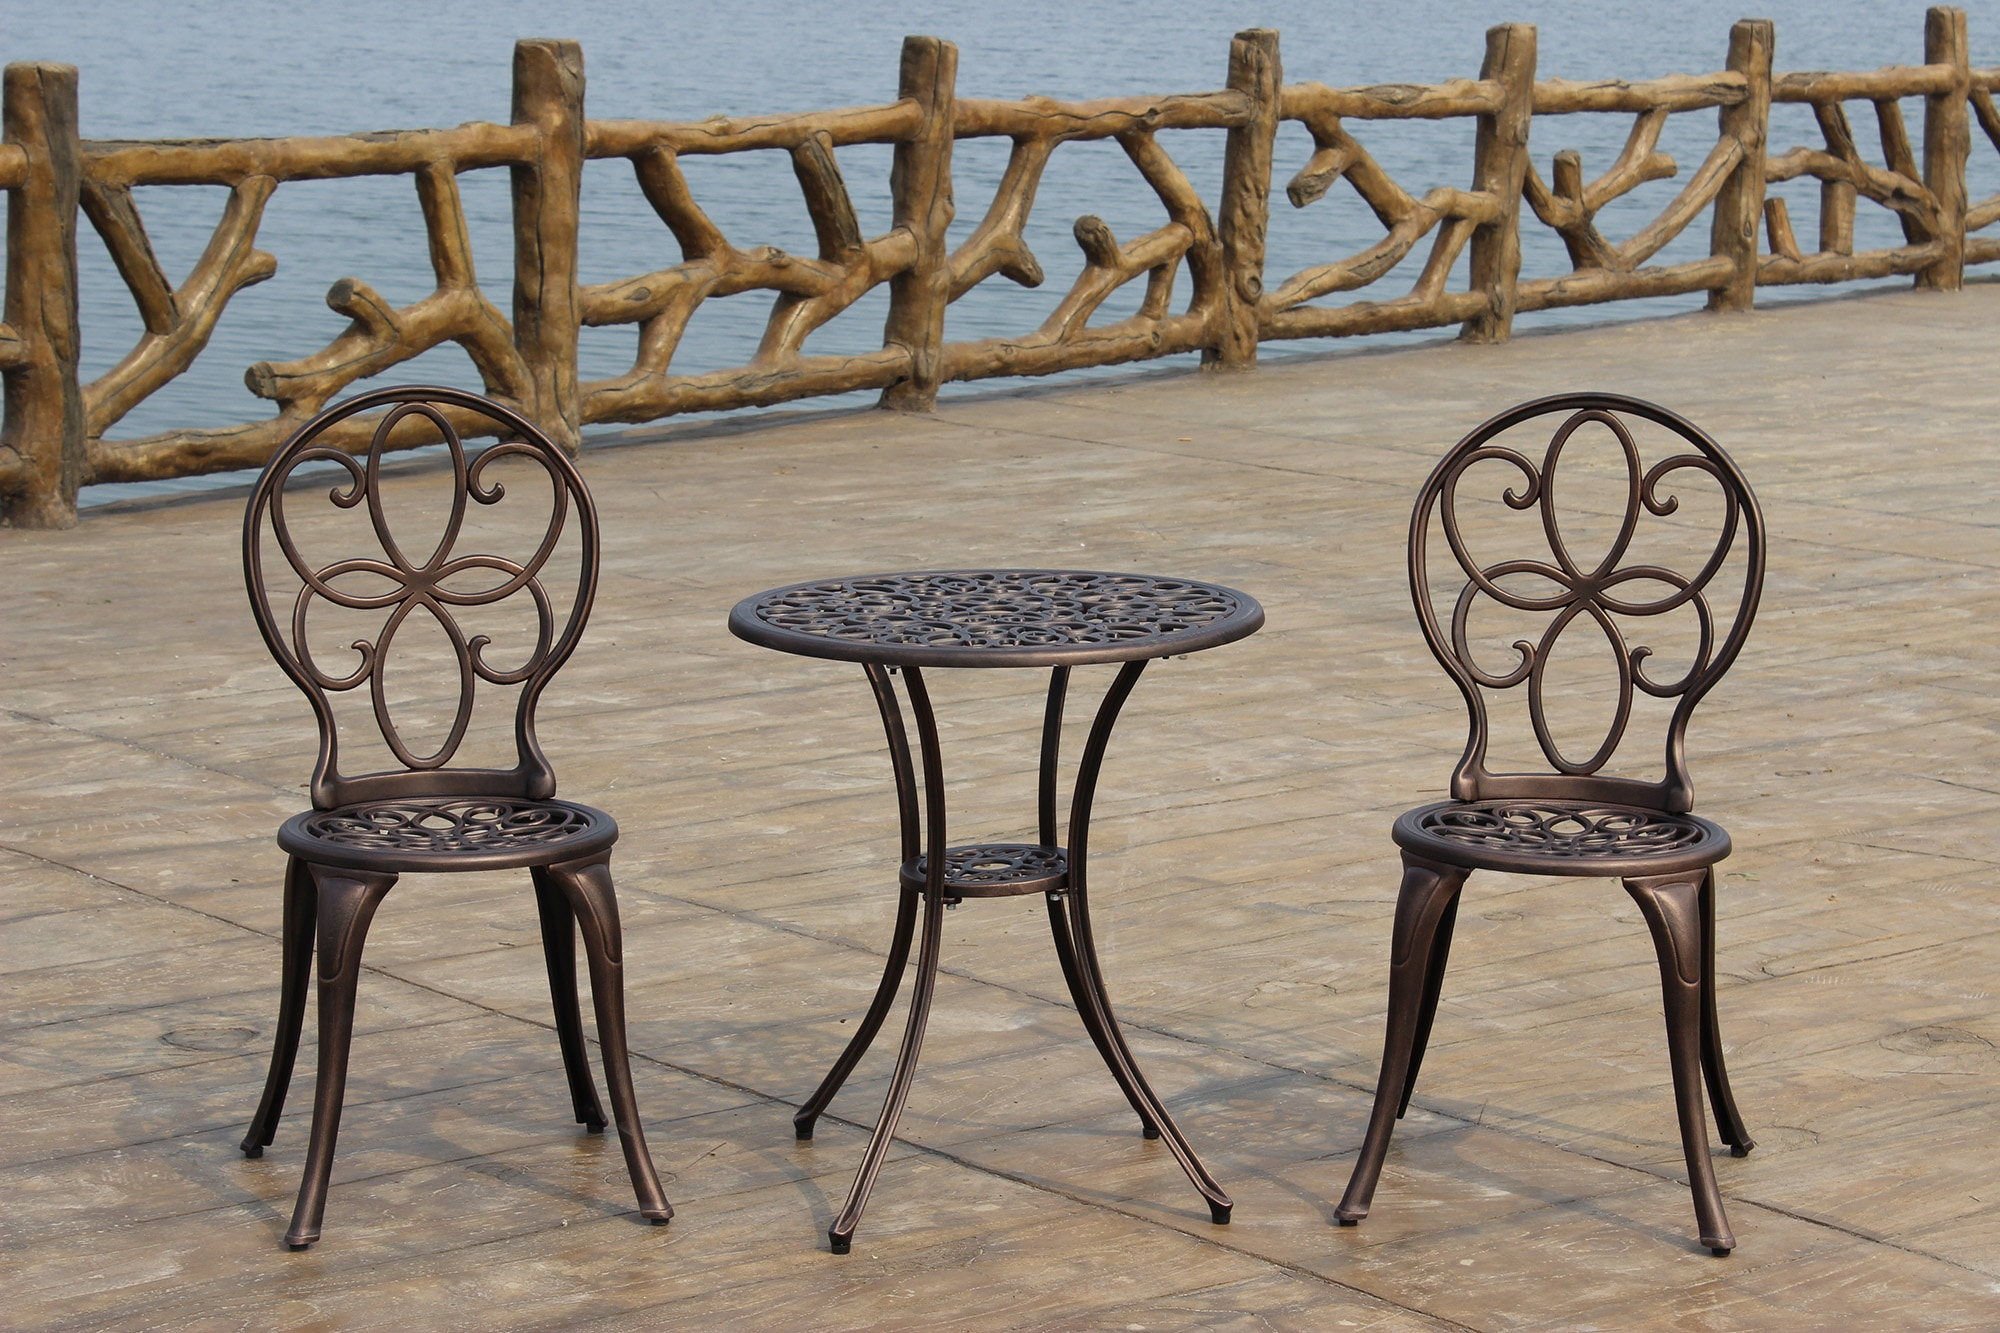 kontiki bistro sets metal bistro sets antique bronze cast aluminum 3 piece bistro set. Black Bedroom Furniture Sets. Home Design Ideas